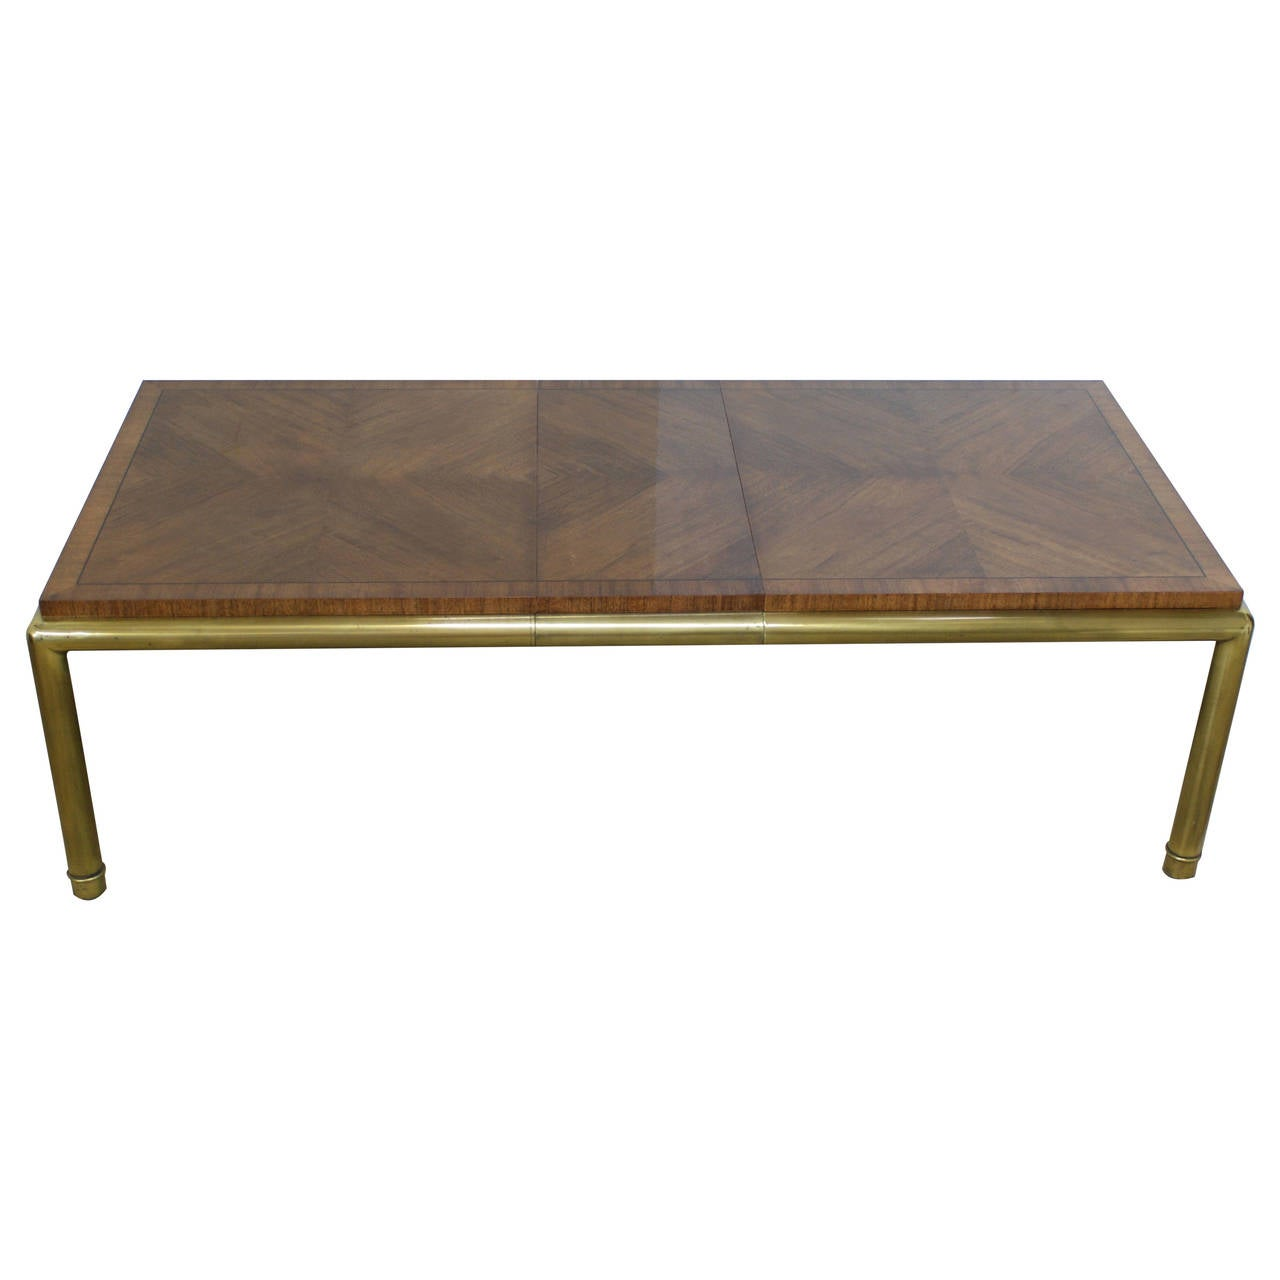 mastercraft brass and walnut dining table with leaf by bernhard rohne 1